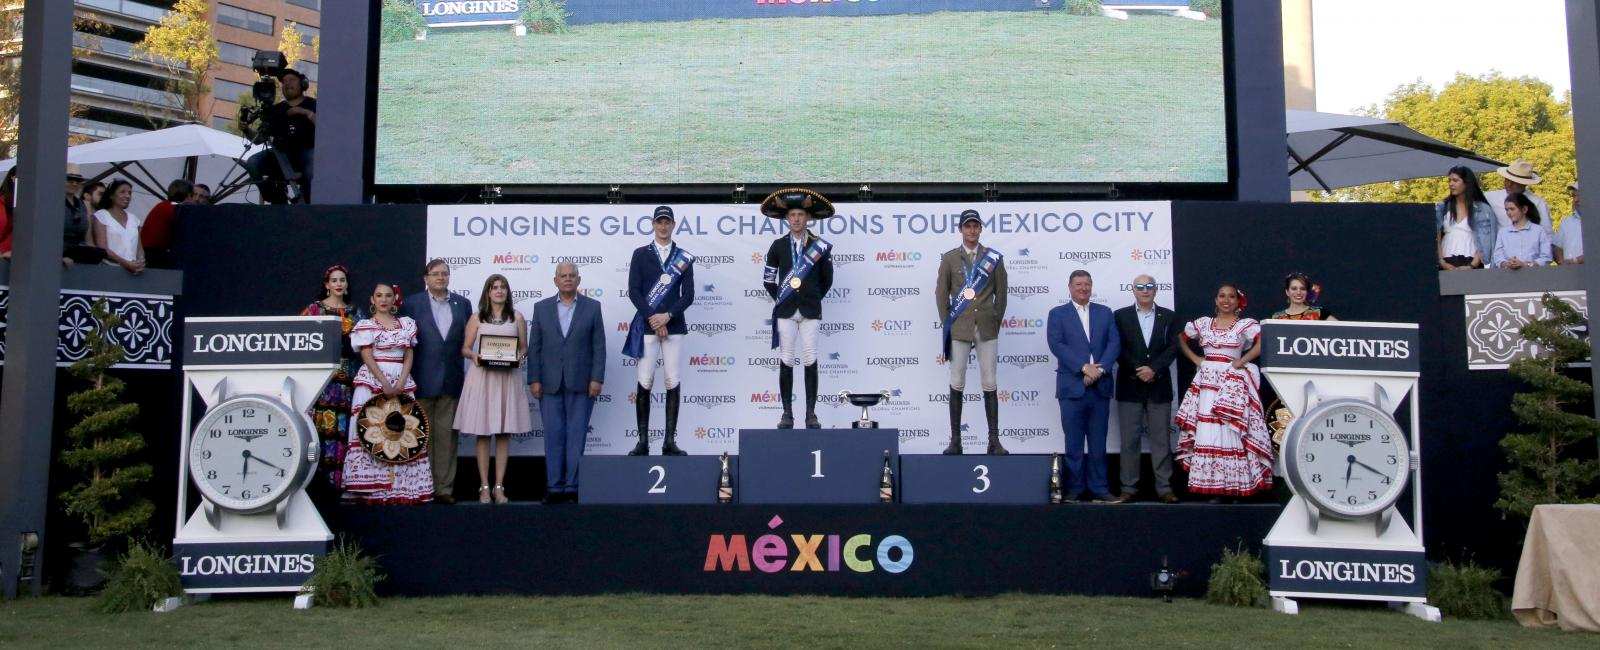 Longines Global Champions Tour; Mexico City